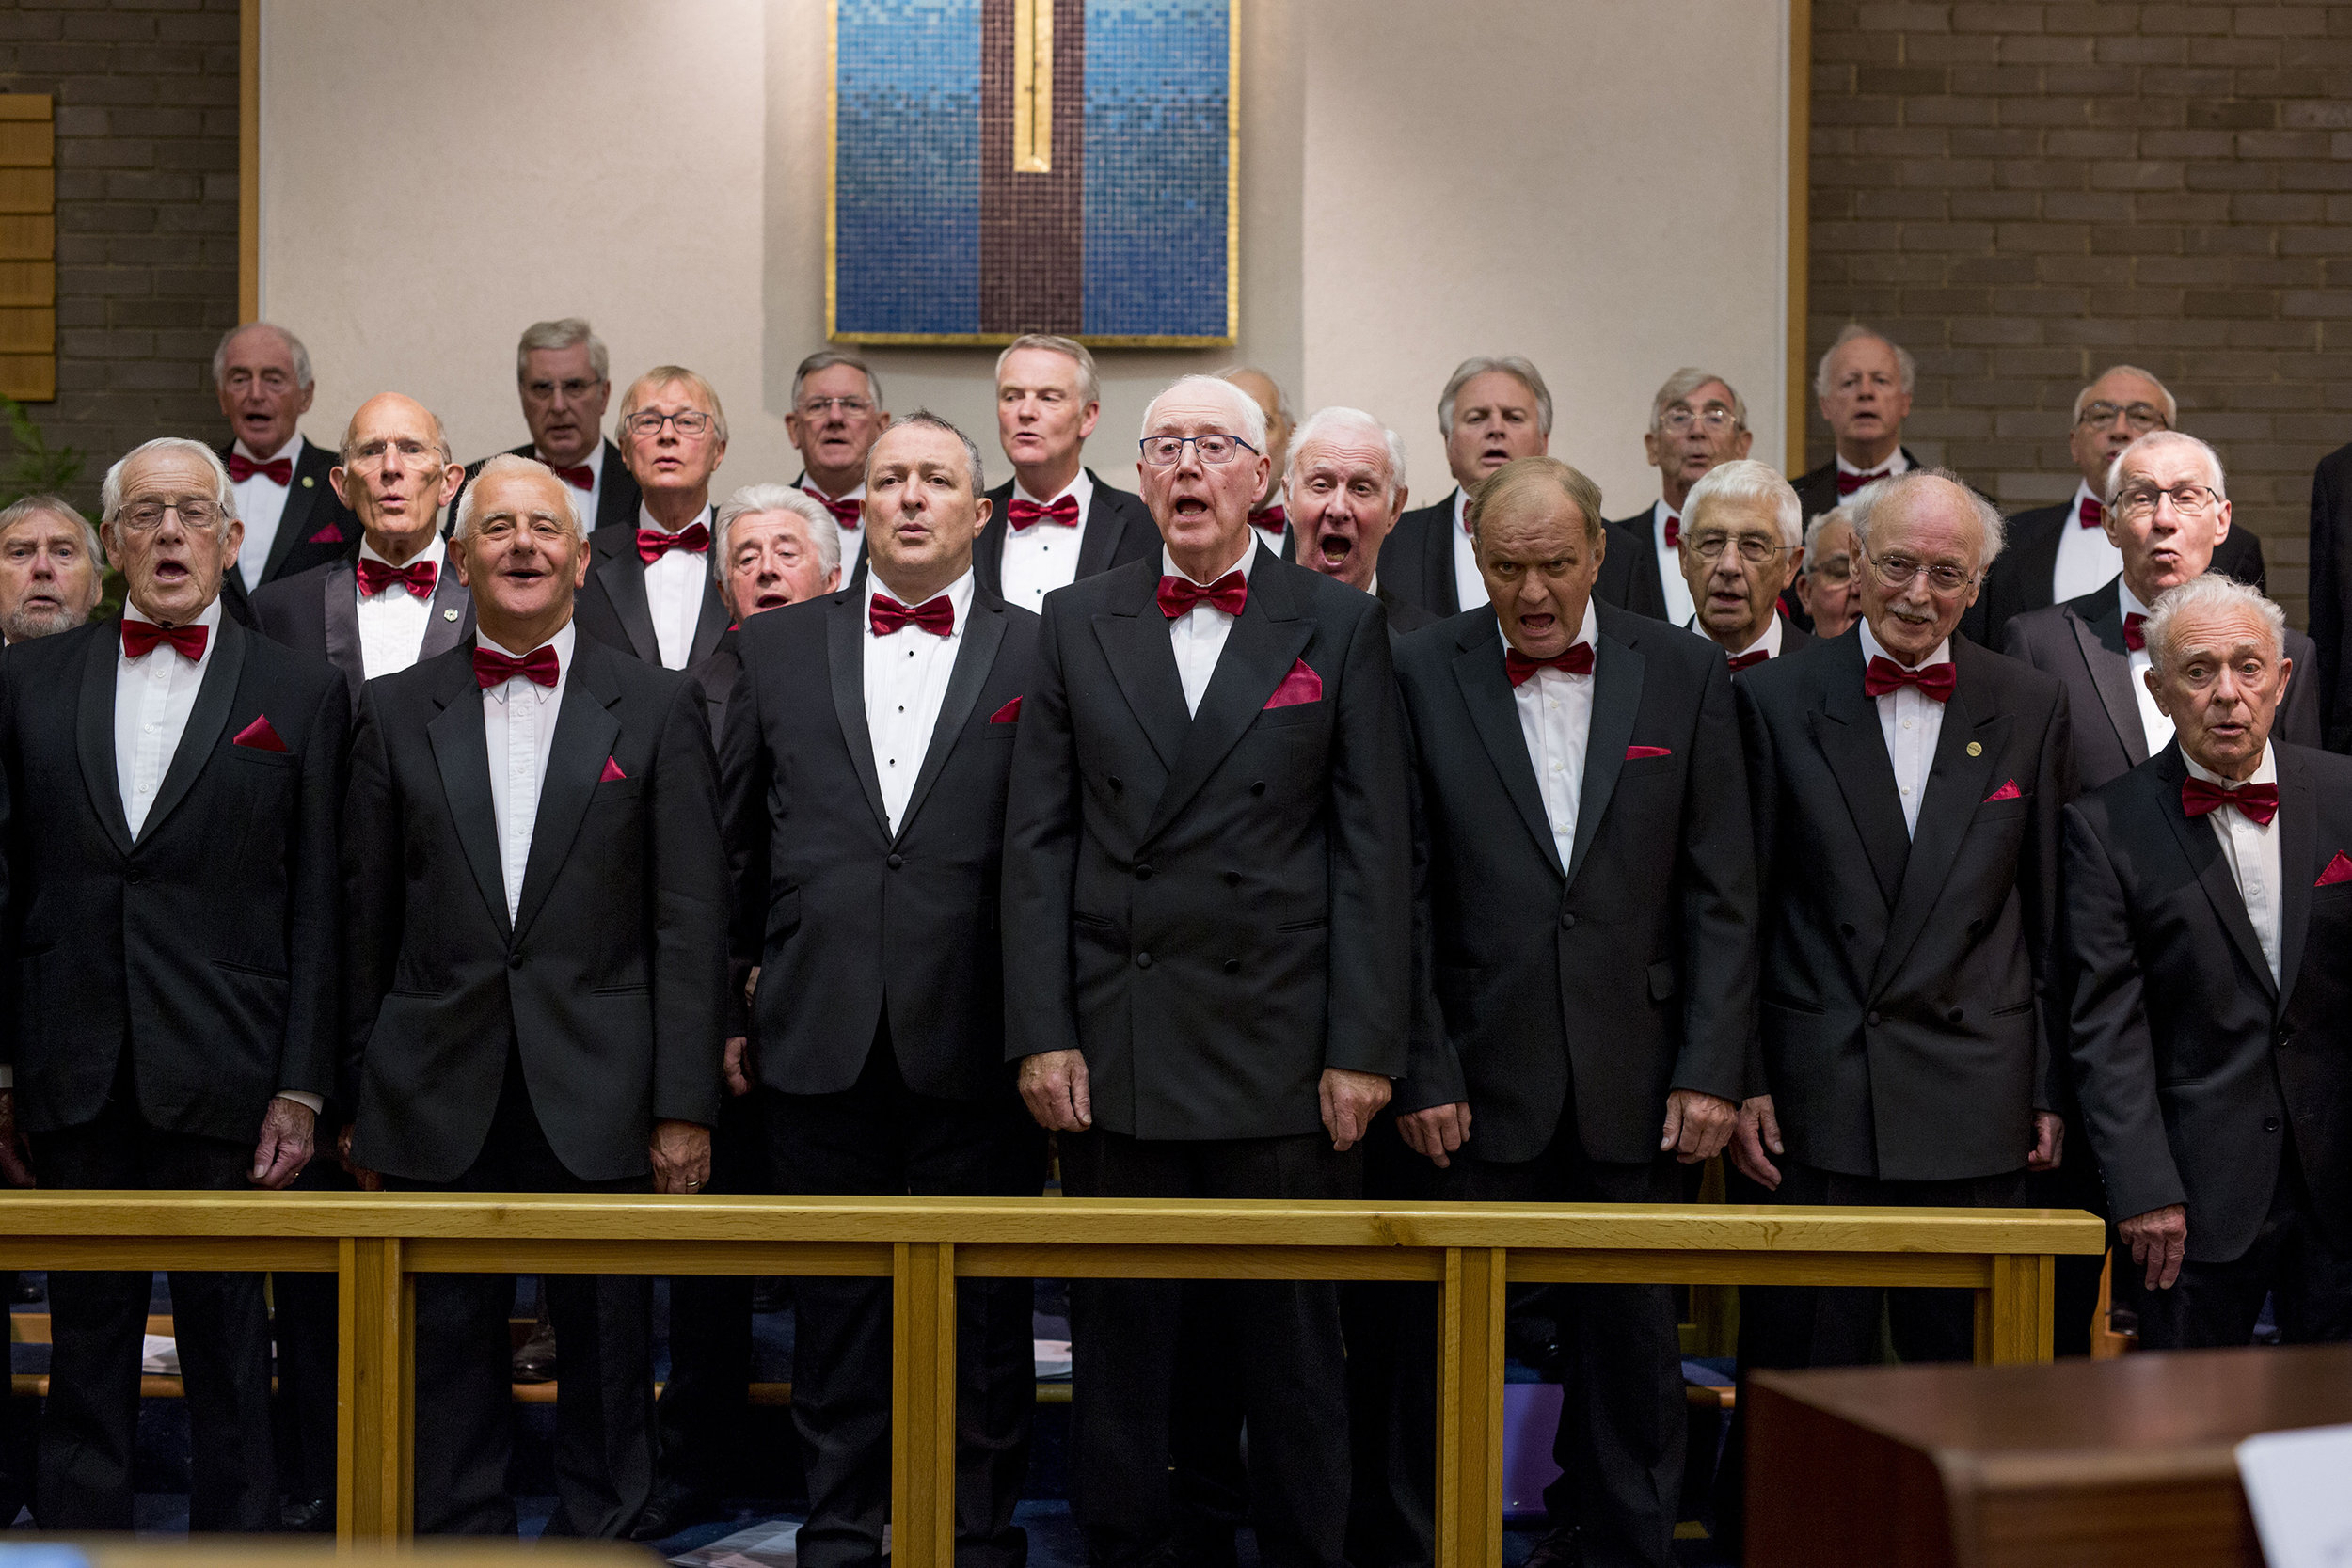 UNP Lloyds 39217 Chelmsford Male Voice Choir011.JPG